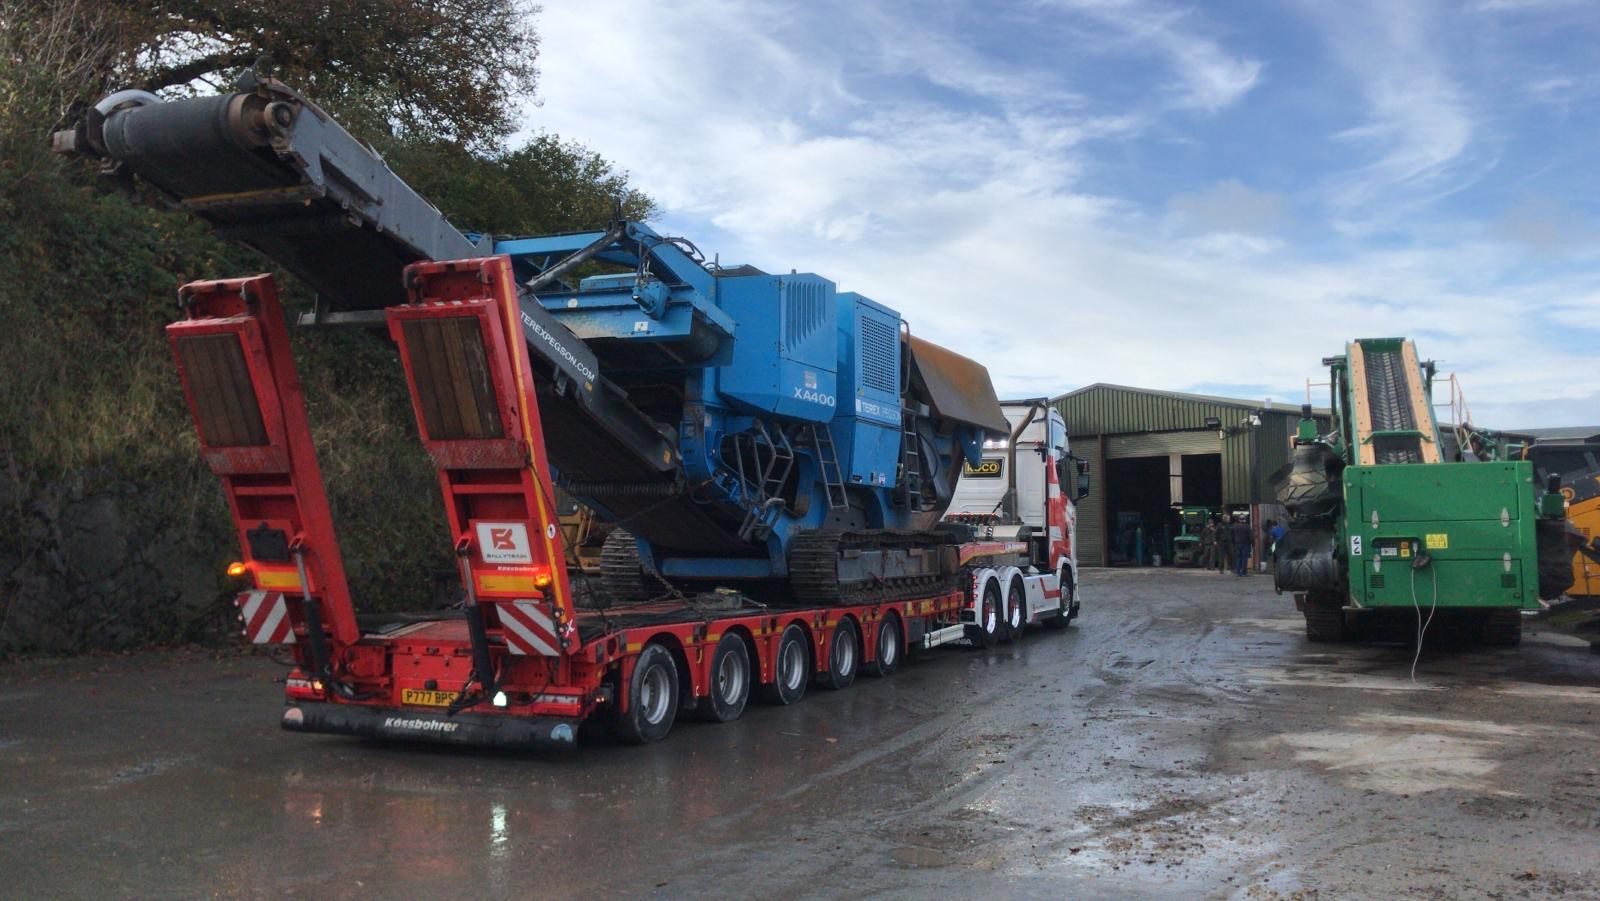 Pegson XA400 Jaw Crusher Sold To Africa